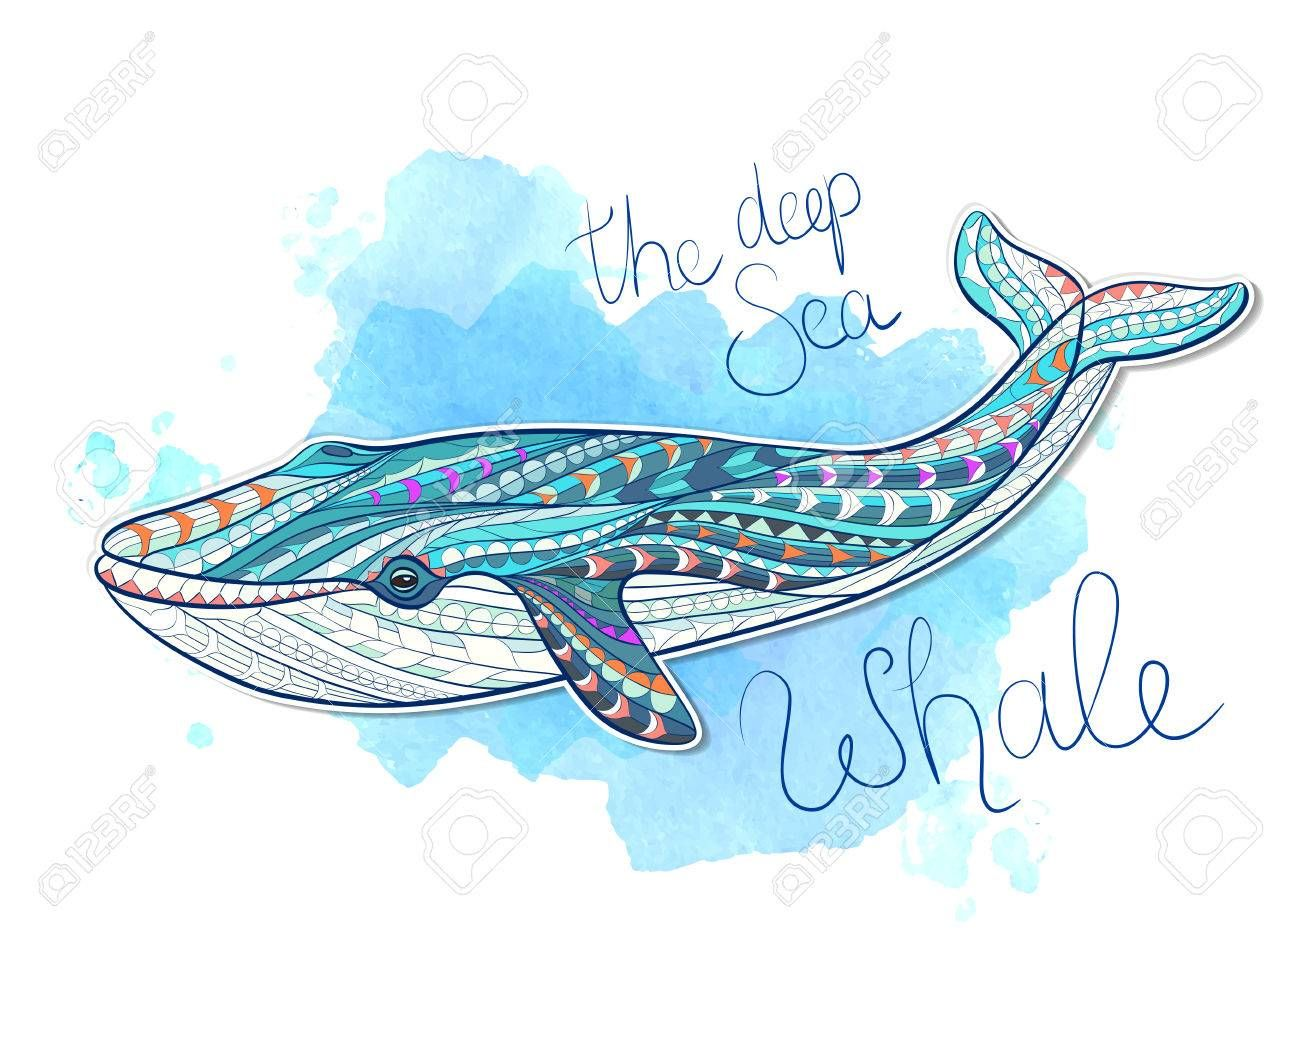 Patterned Whale On Grunge Background Indian Totem Tattoo Design It May Be Used For Design Of A T Shirt Bag Postcard A Post Totem Tattoo Whale Whale Tattoos